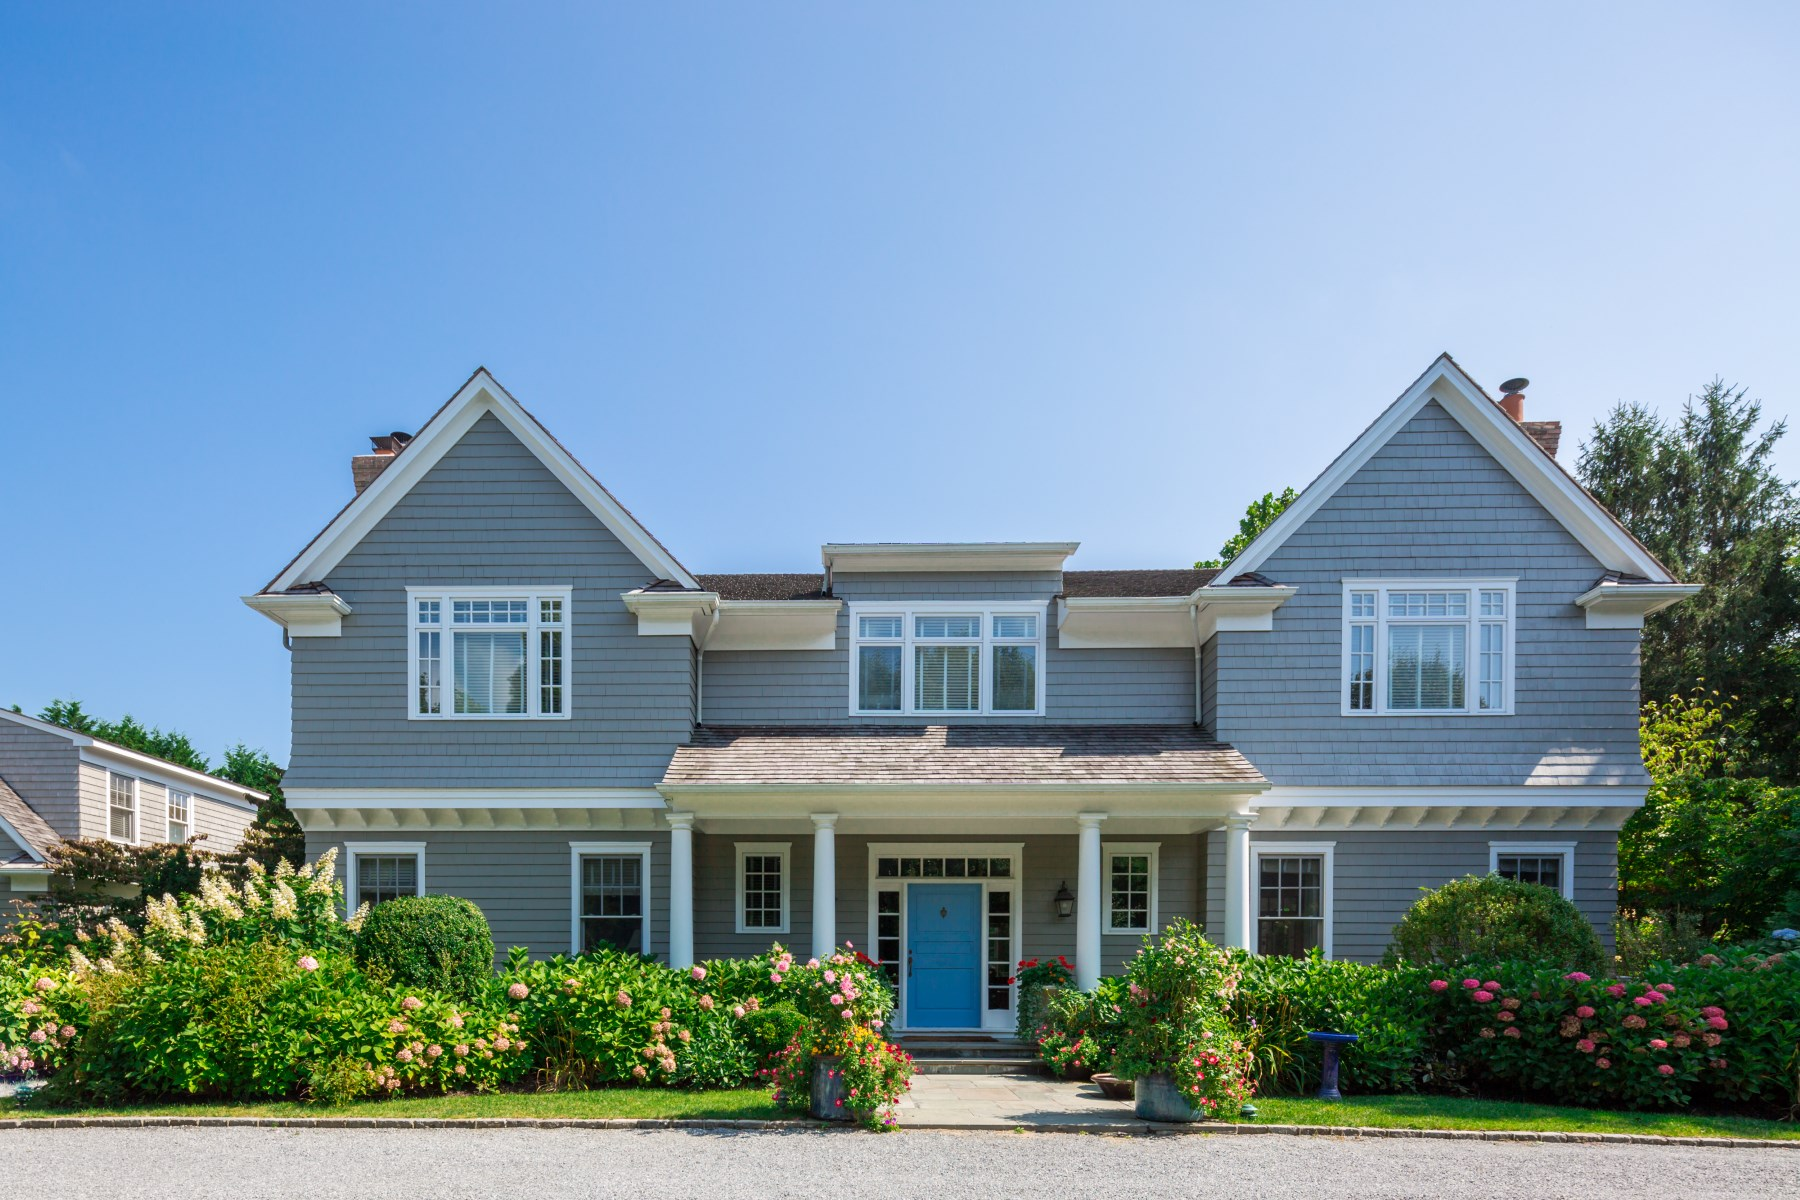 Single Family Home for Sale at Village With Tennis 327 Georgica Road East Hampton, New York, 11937 United States